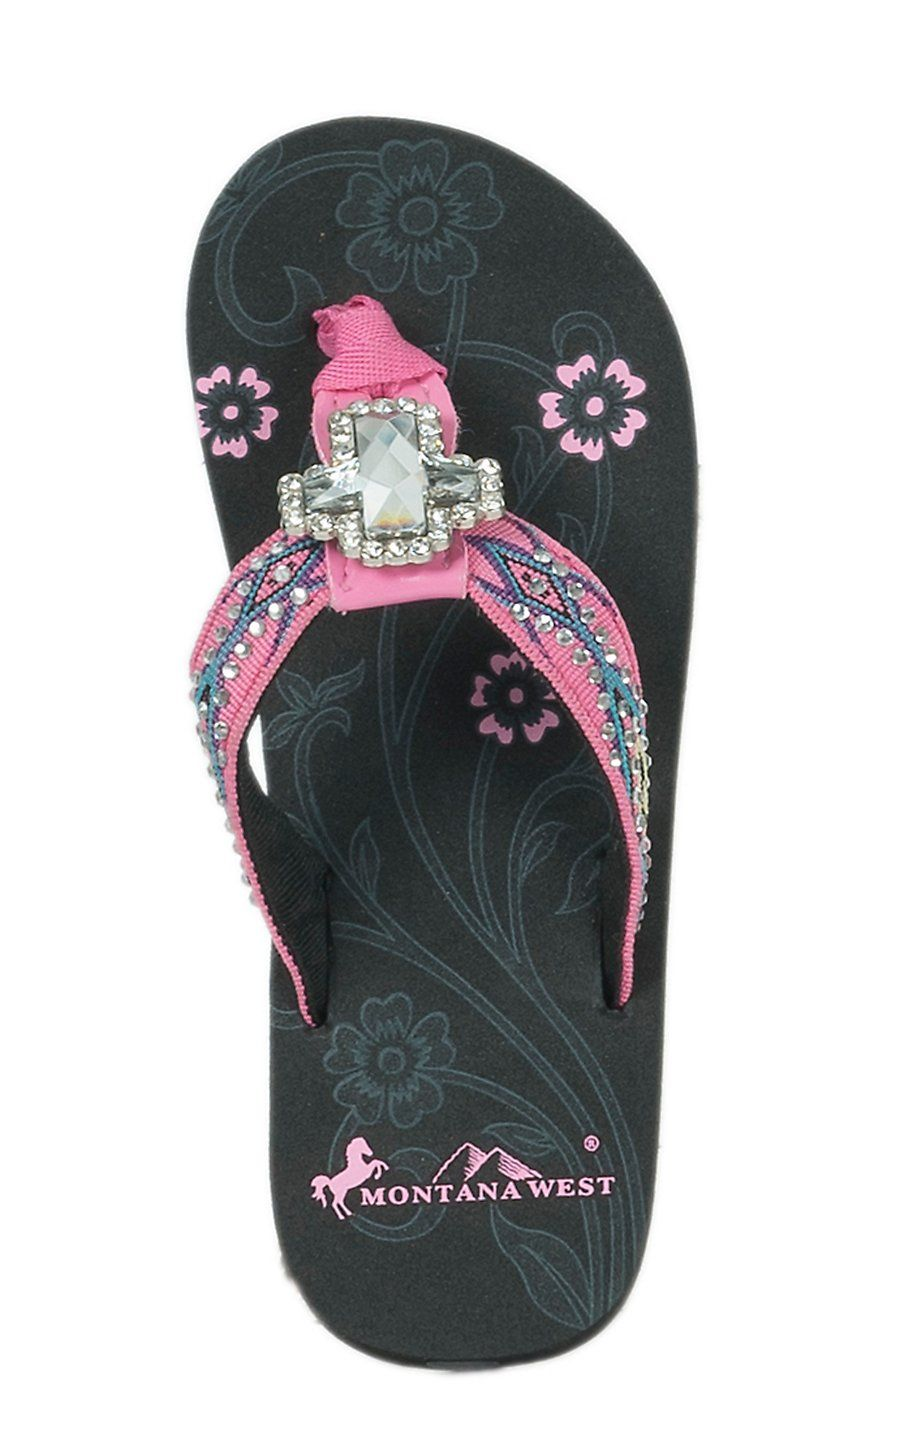 Montana West Girls Youth Black With Pink Aztec Strap